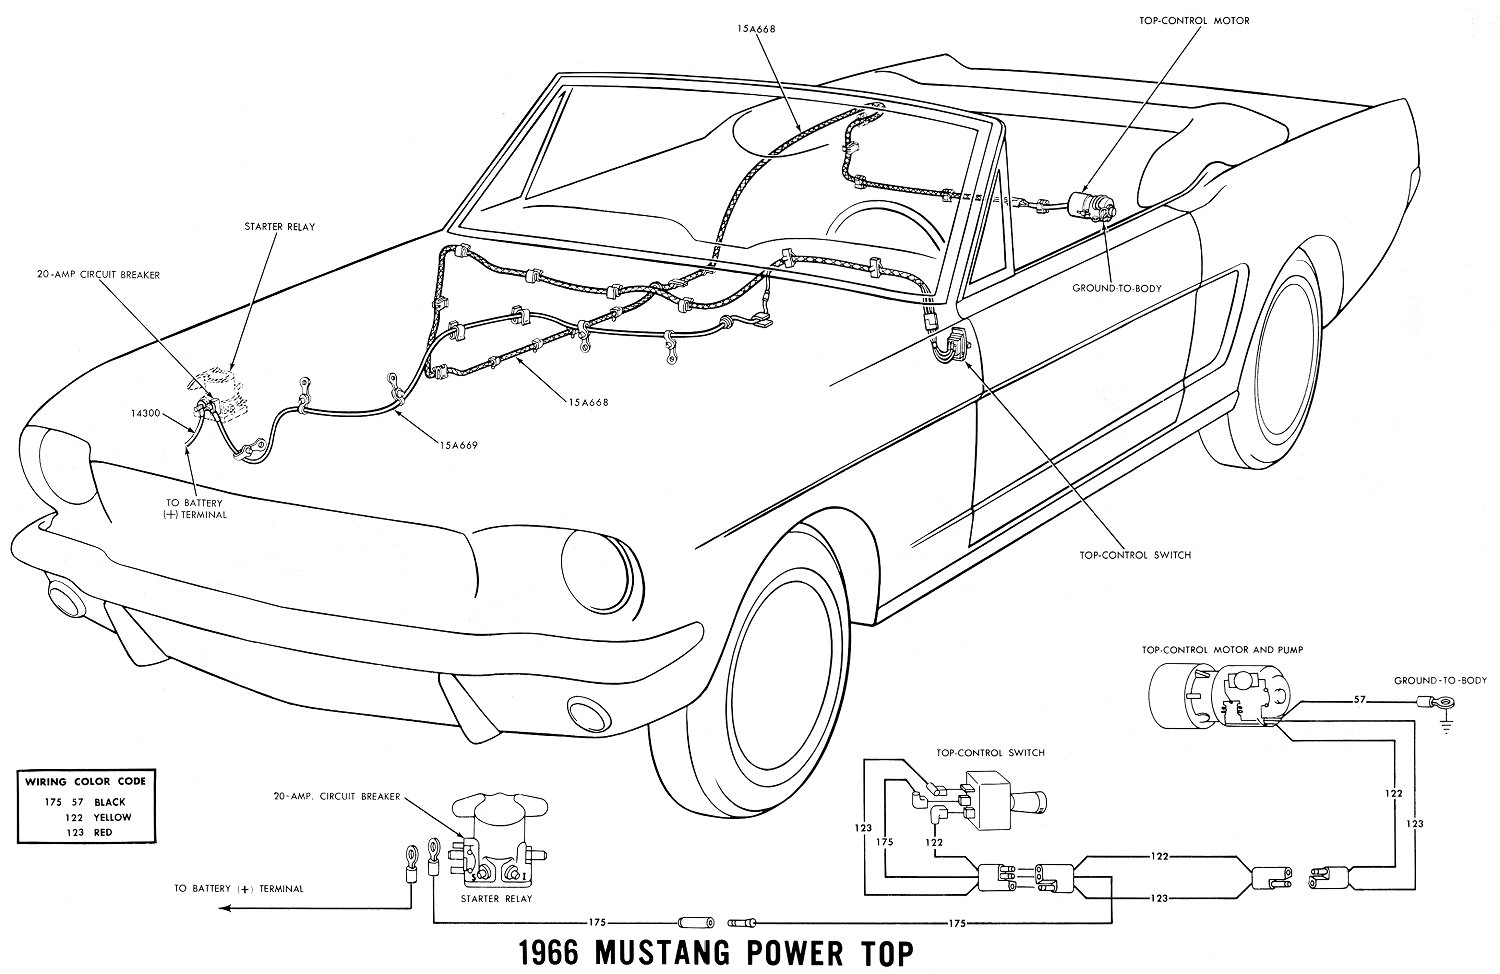 66pwrtop 1966 mustang wiring diagrams average joe restoration 66 mustang engine wiring diagram free at bayanpartner.co